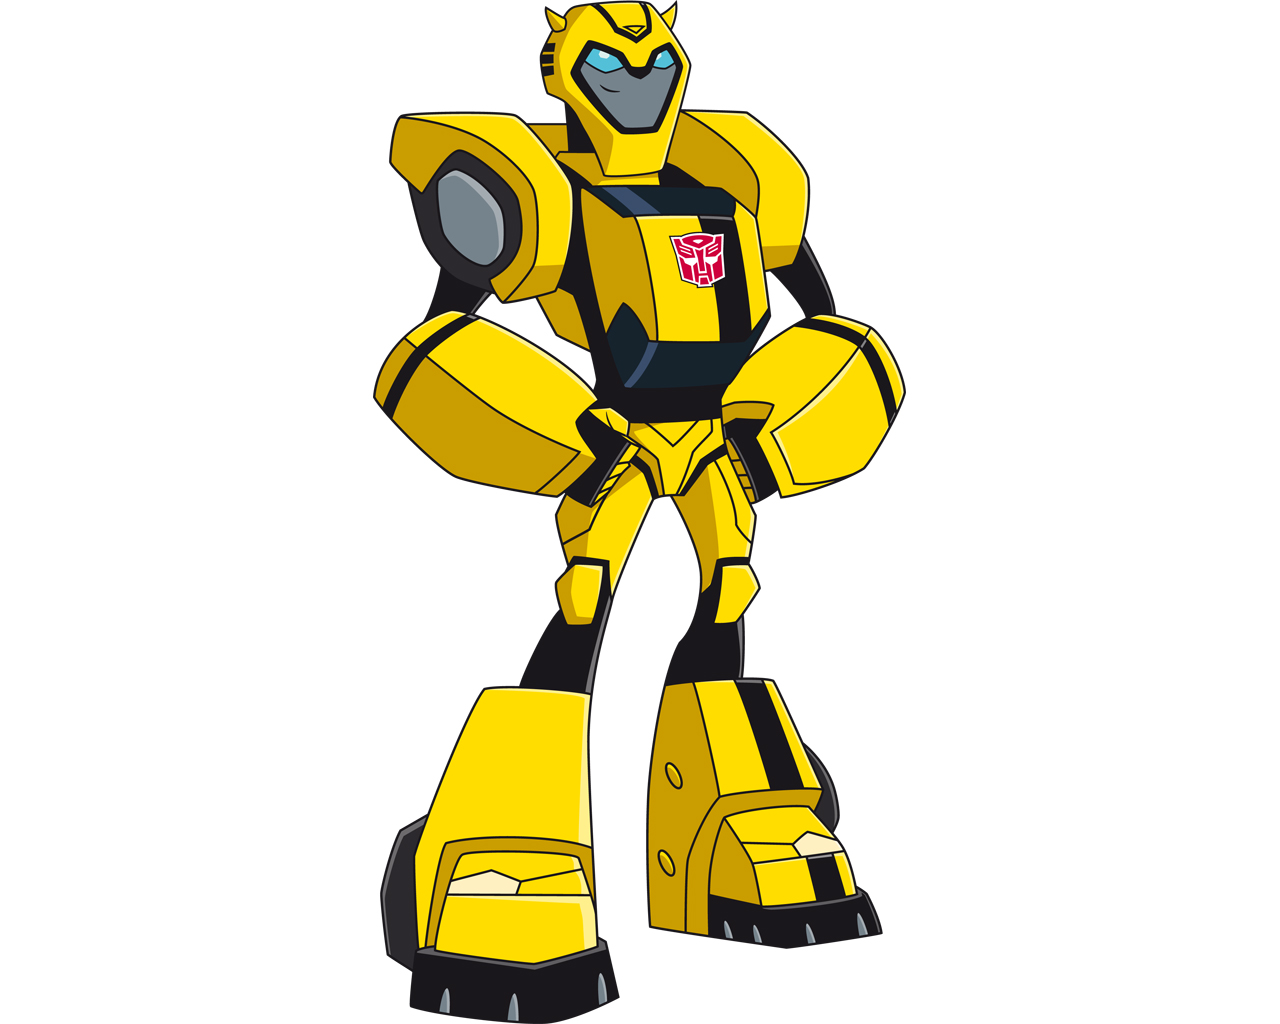 Bumblebee Sketch - ClipArt Best